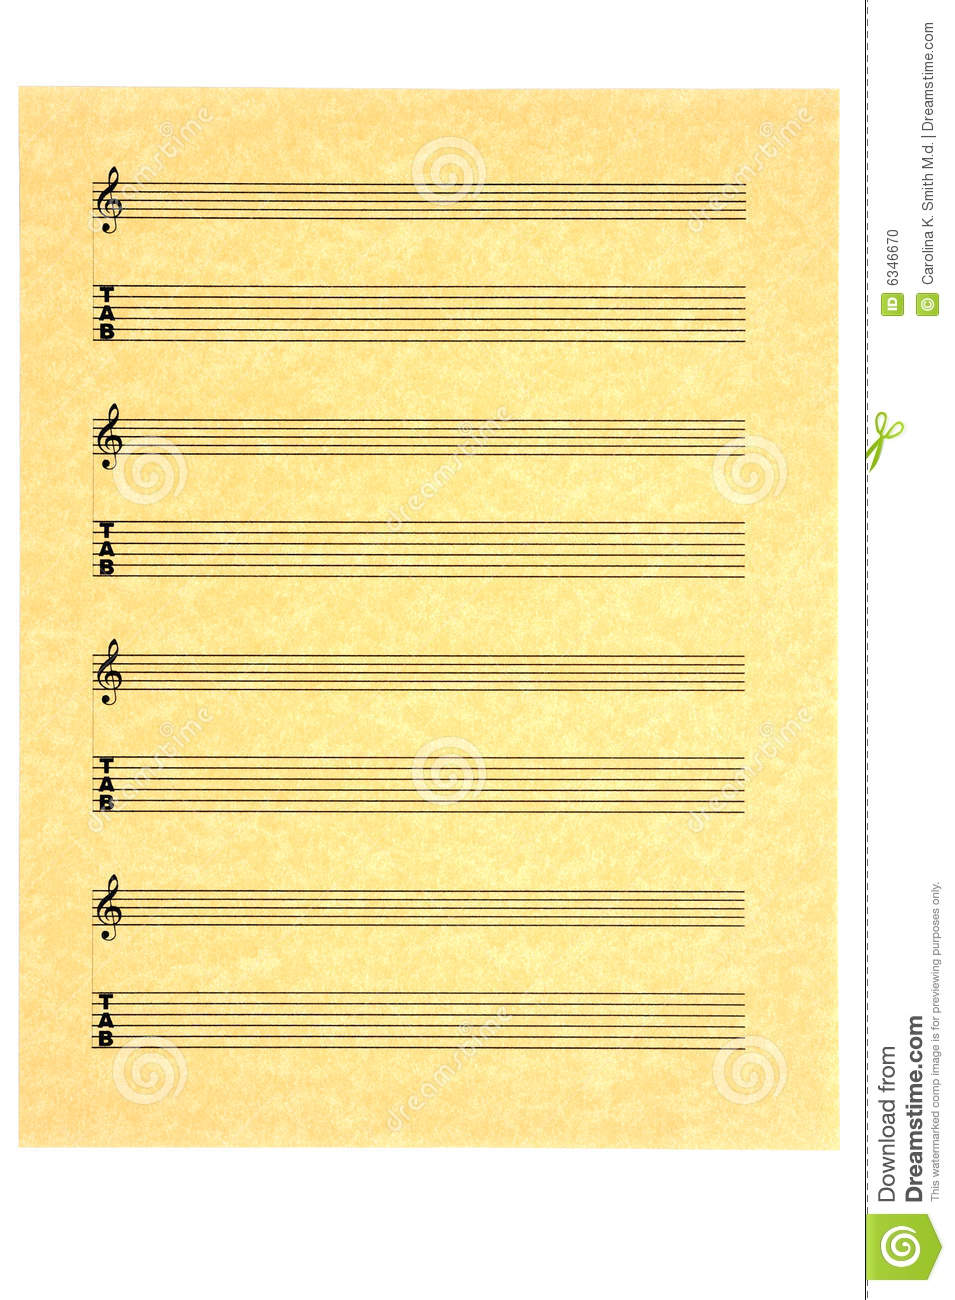 Blank Music Sheet for guitar (tabs) with treble clef on parchment ...